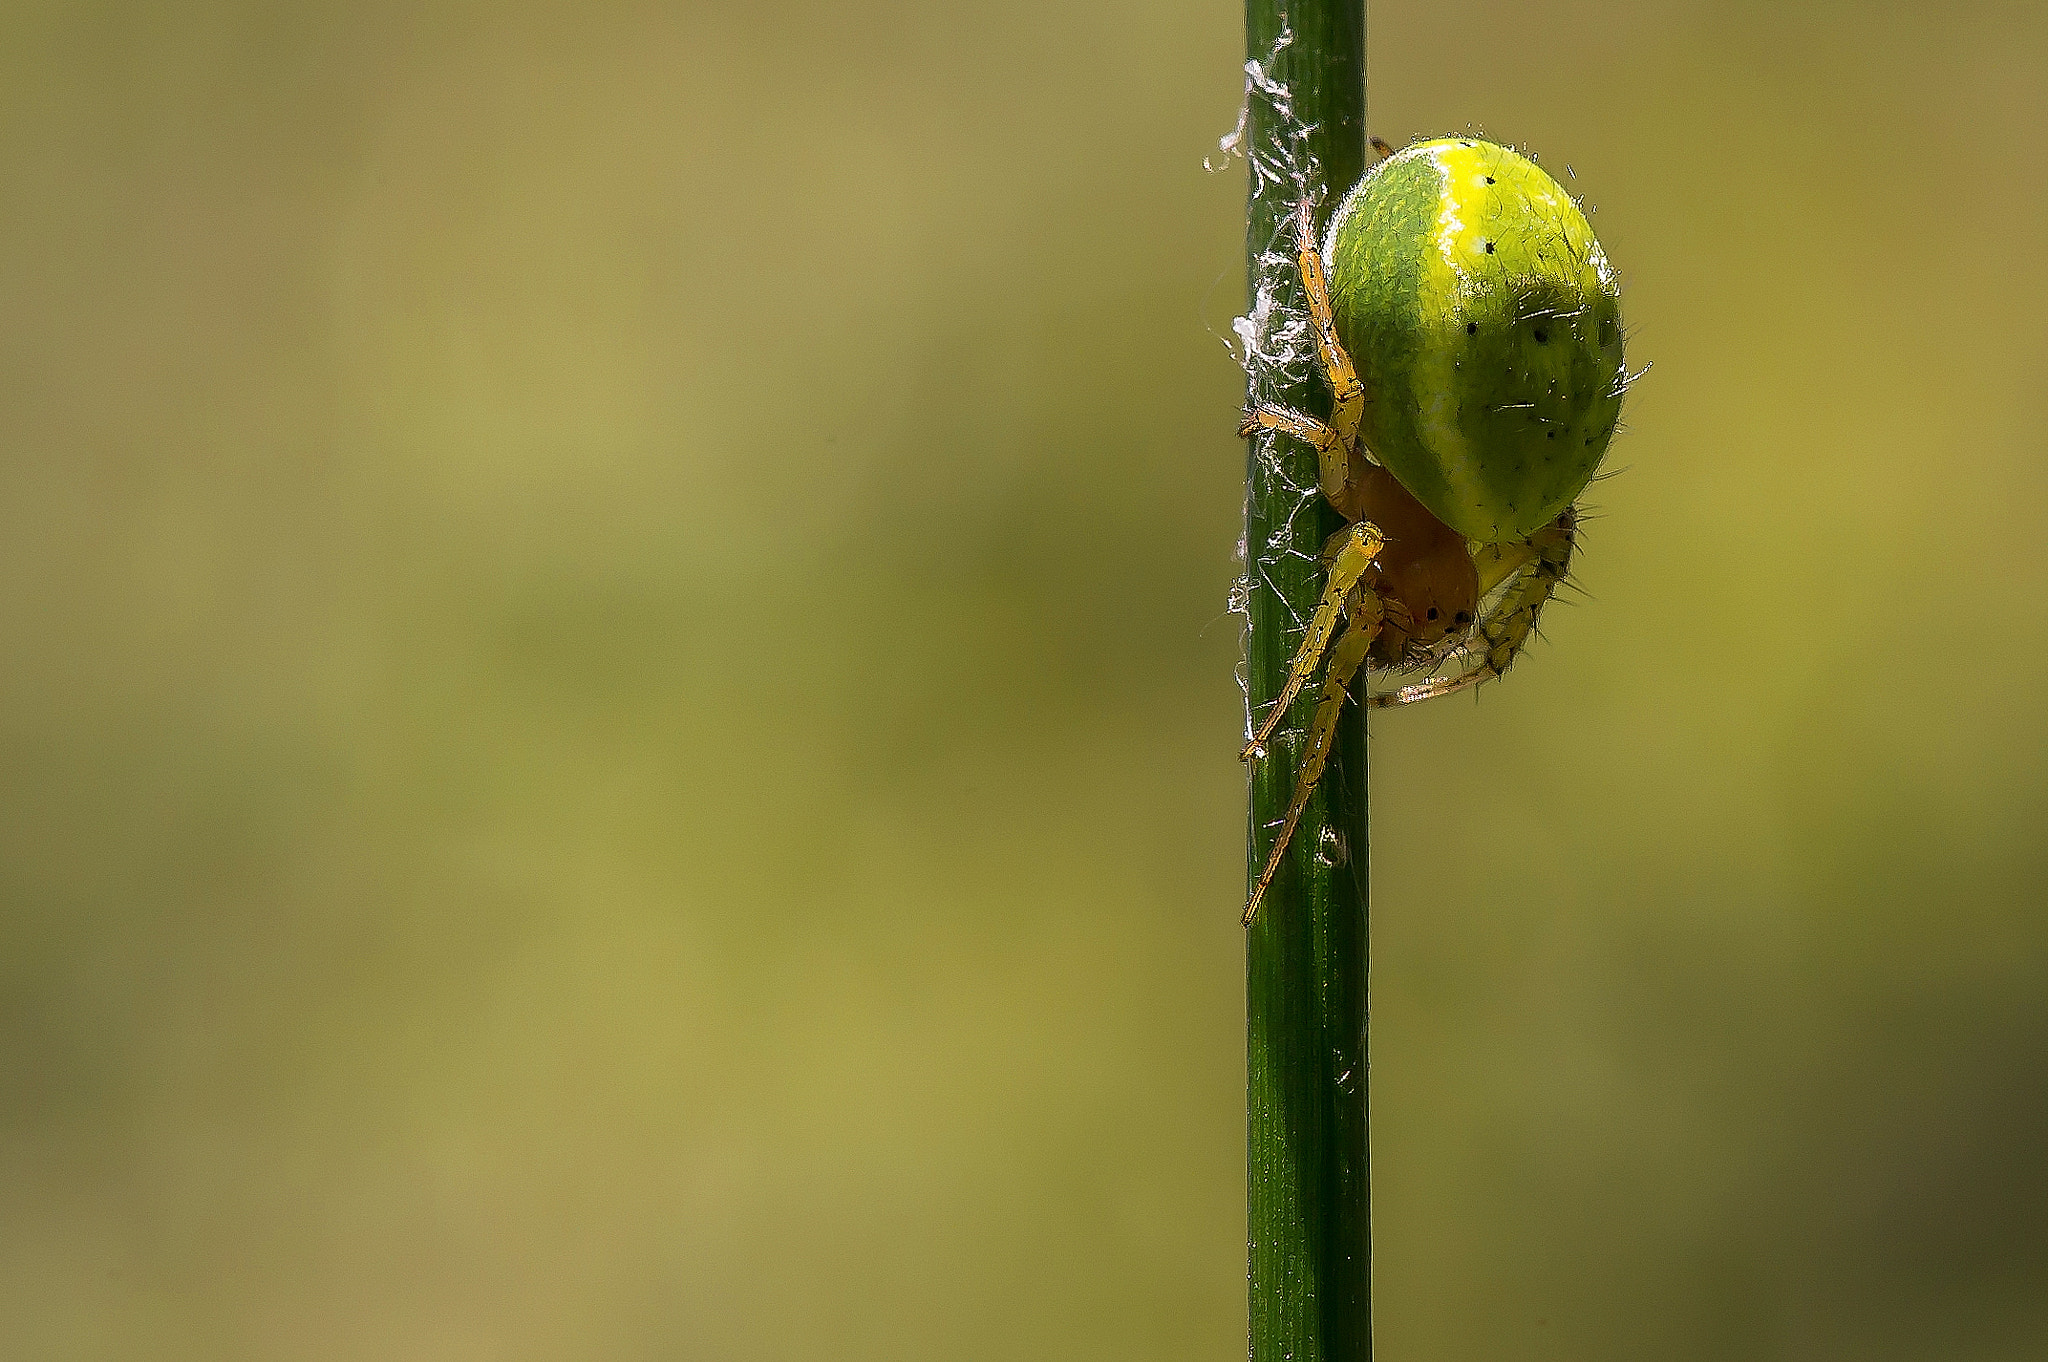 Photograph spider by Gabriele Mucci on 500px